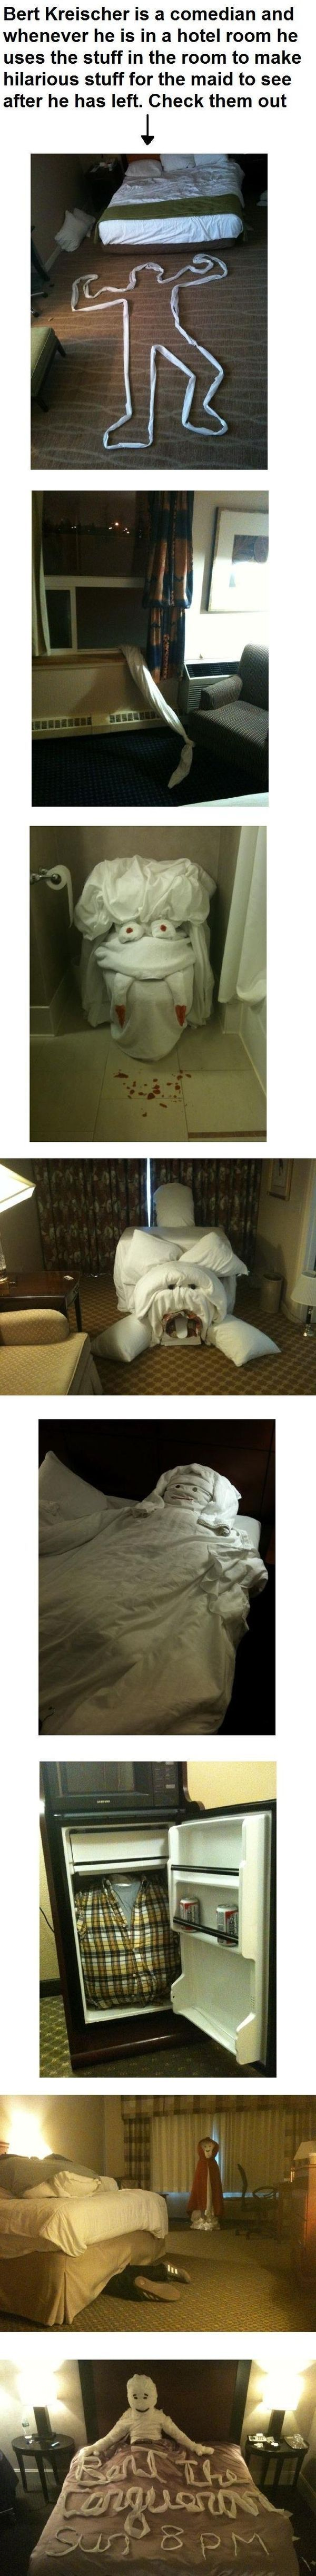 Several very funny ways to scare the crap out of hotel maids... using laundry.: Buckets Lists, Hotels Maids, Pranks, Funny Stuff, Funnies, Humor, Scared Hotels, So Funny, Hotels Rooms